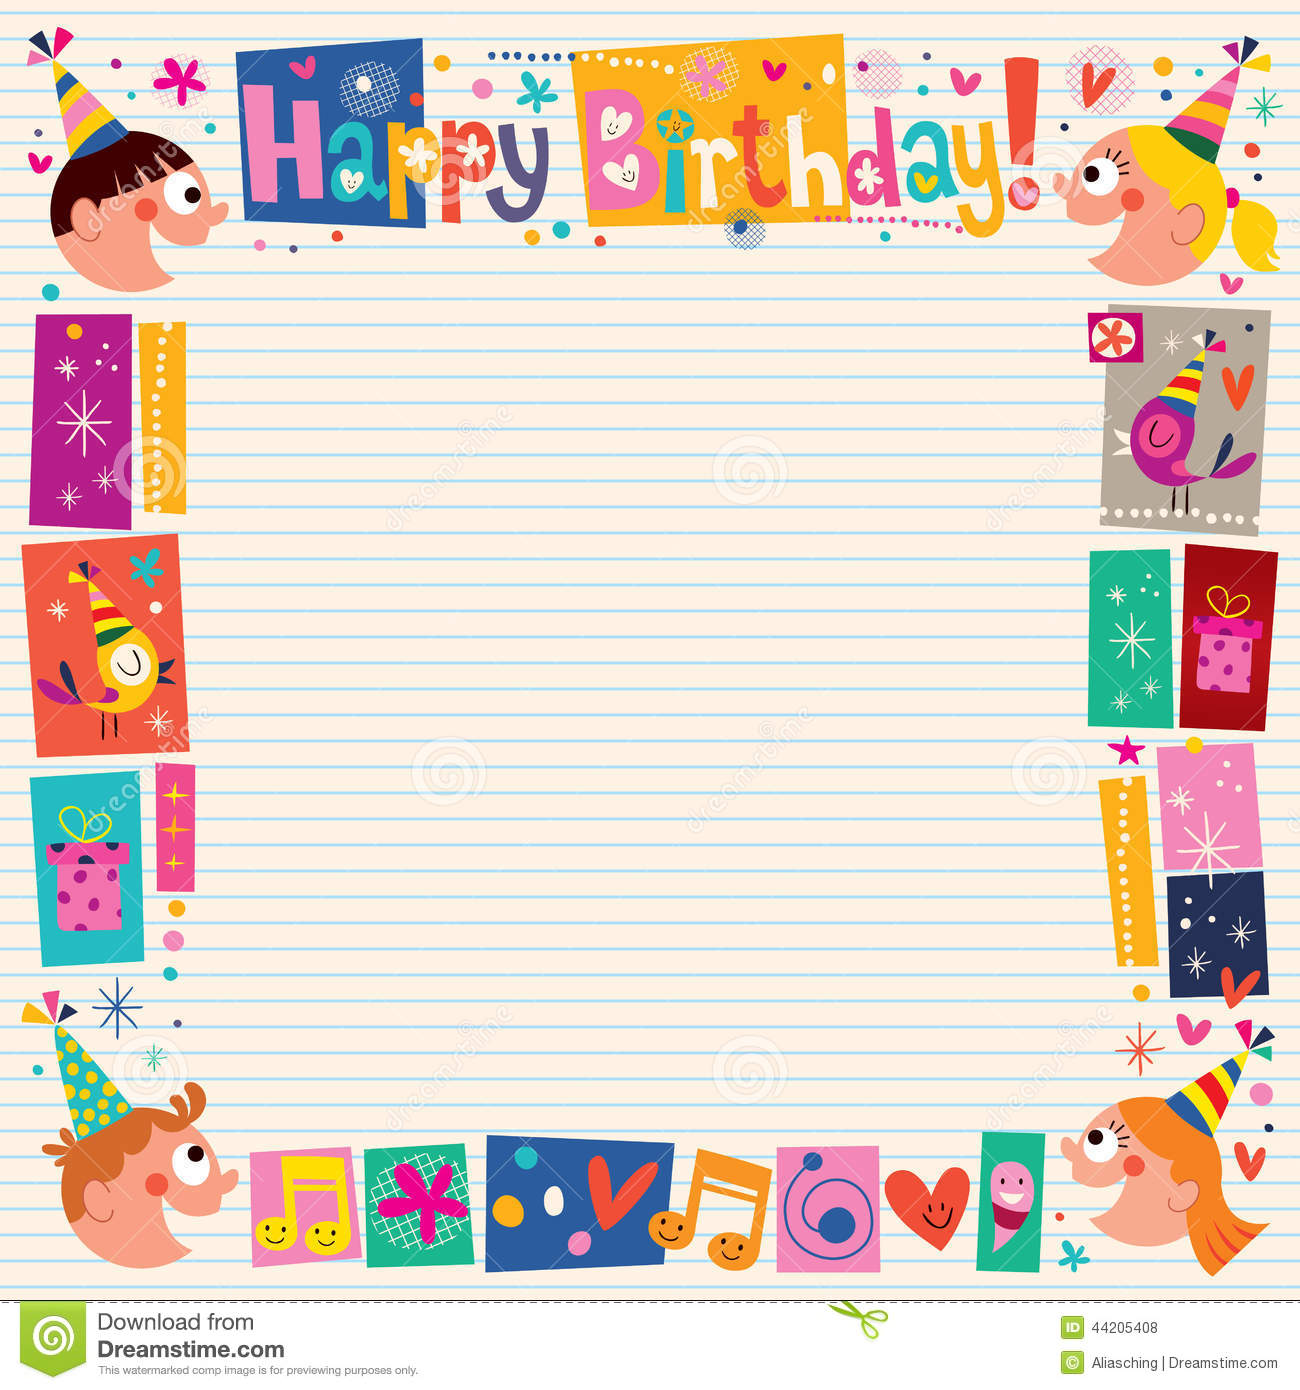 Happy Birthday Kids Decorative Border